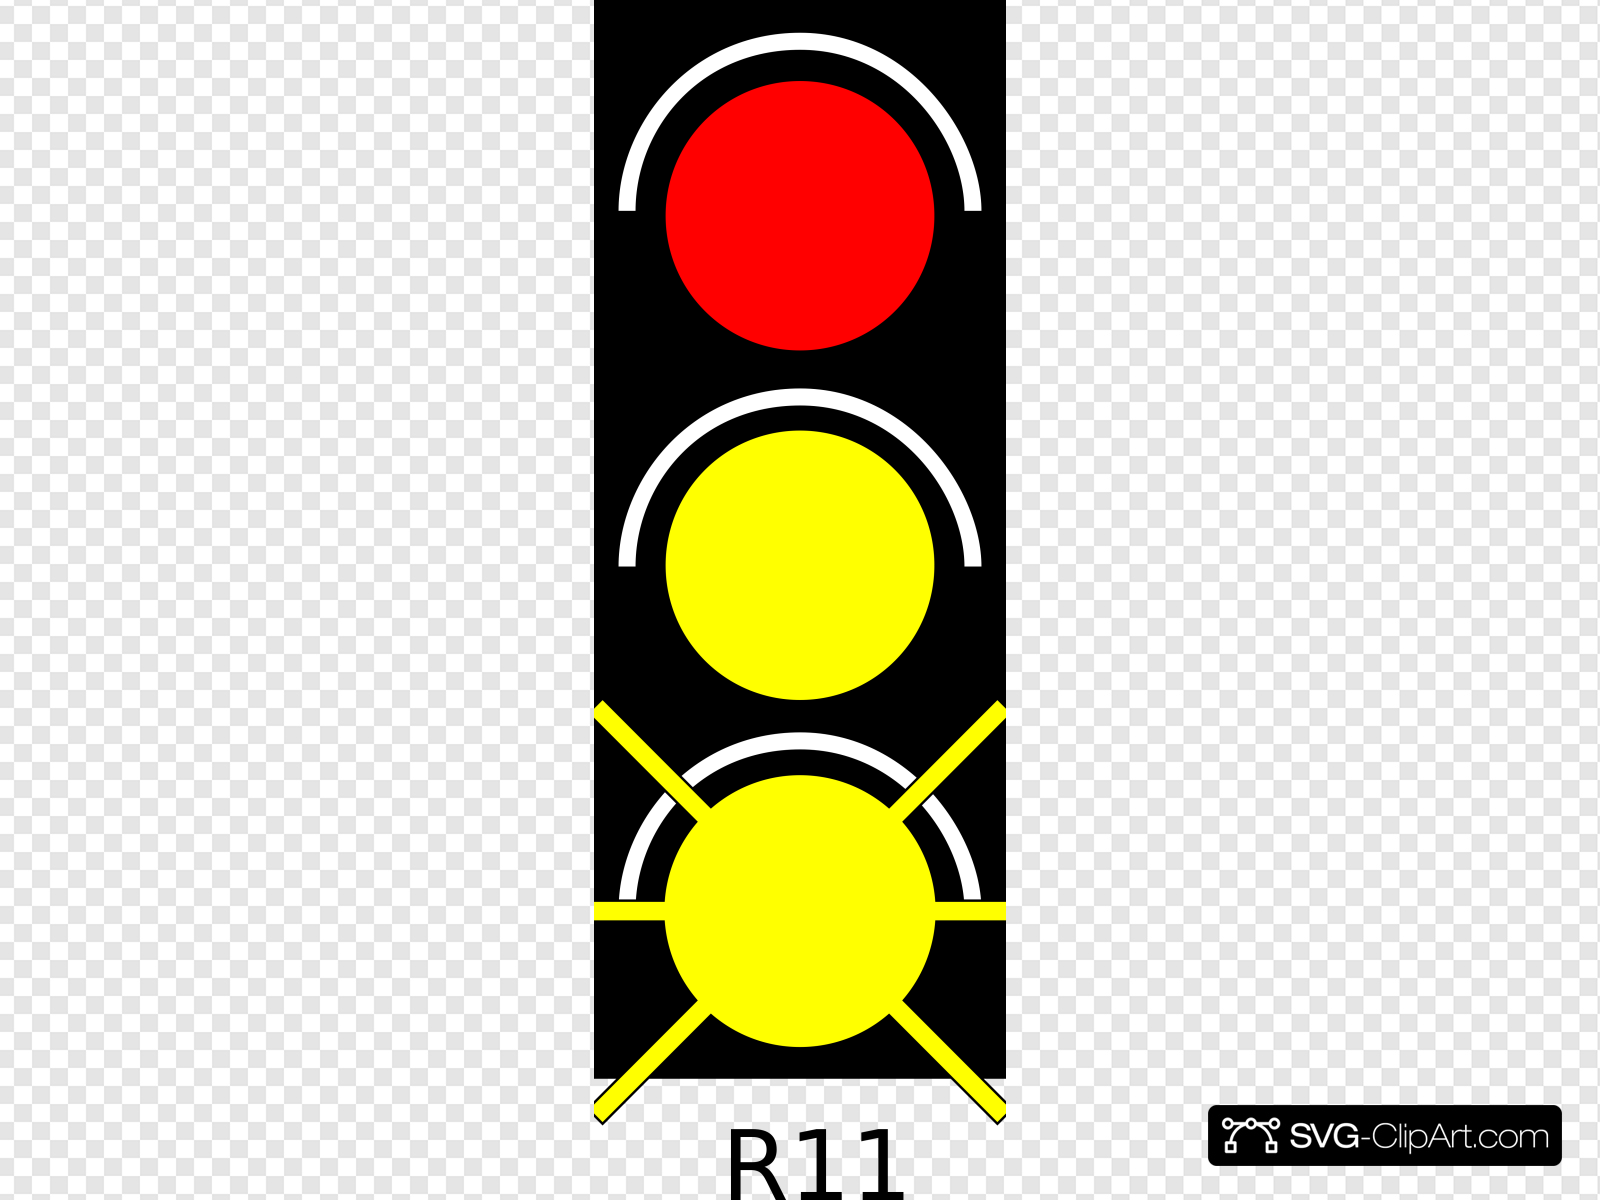 Red Light Traffic Light Clip art, Icon and SVG.